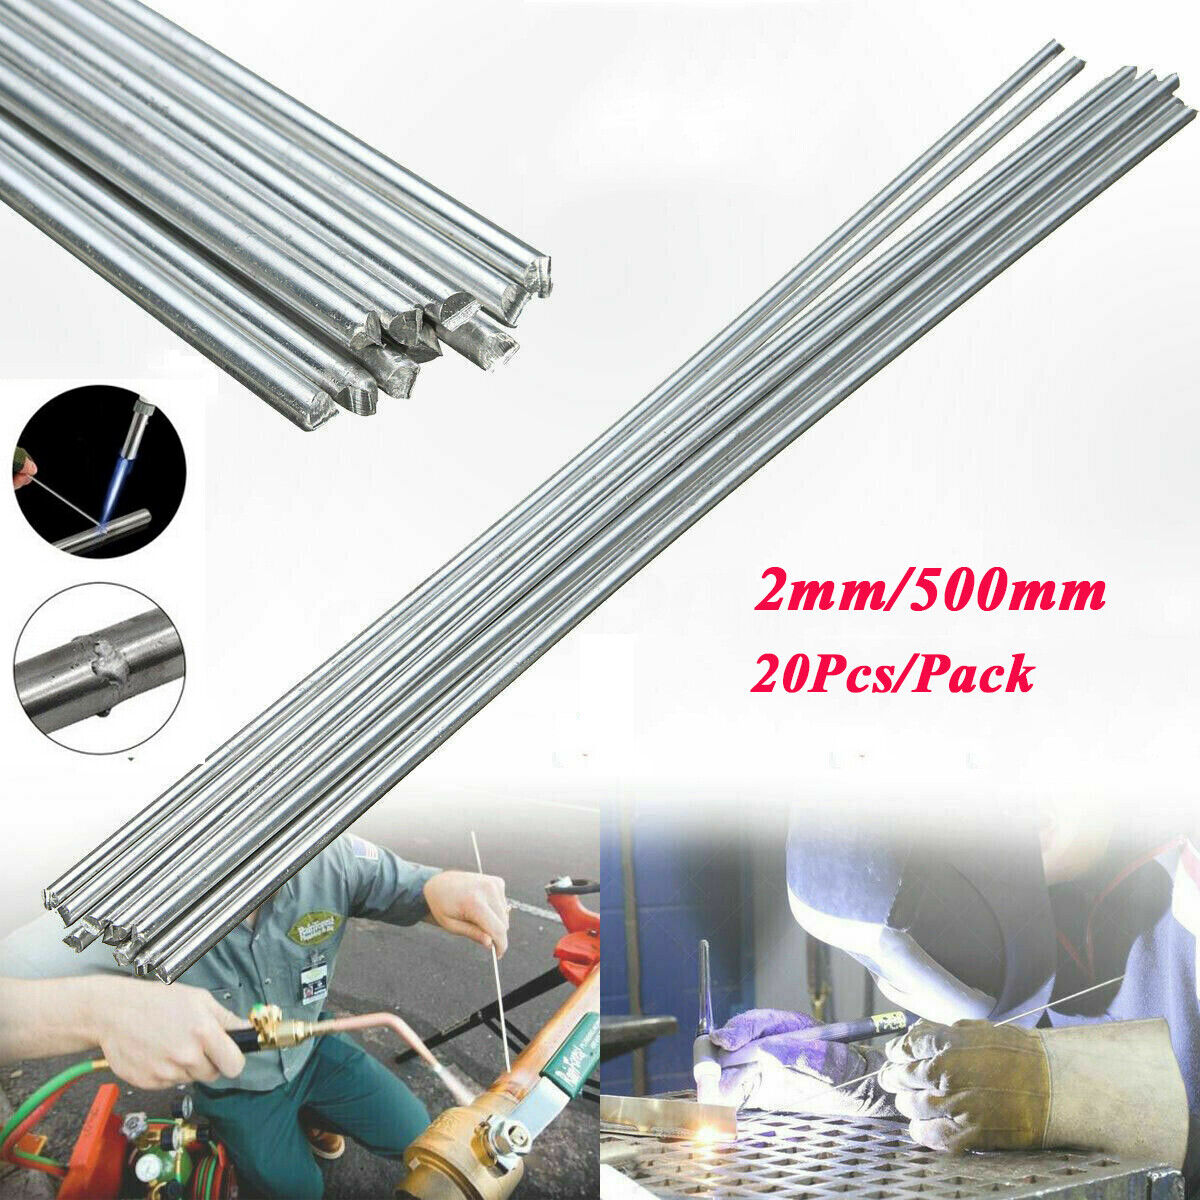 USA Easy Aluminum Welding Rods Wire 1.64ft Shipping Free 10//20//30//50PCS Brazing–